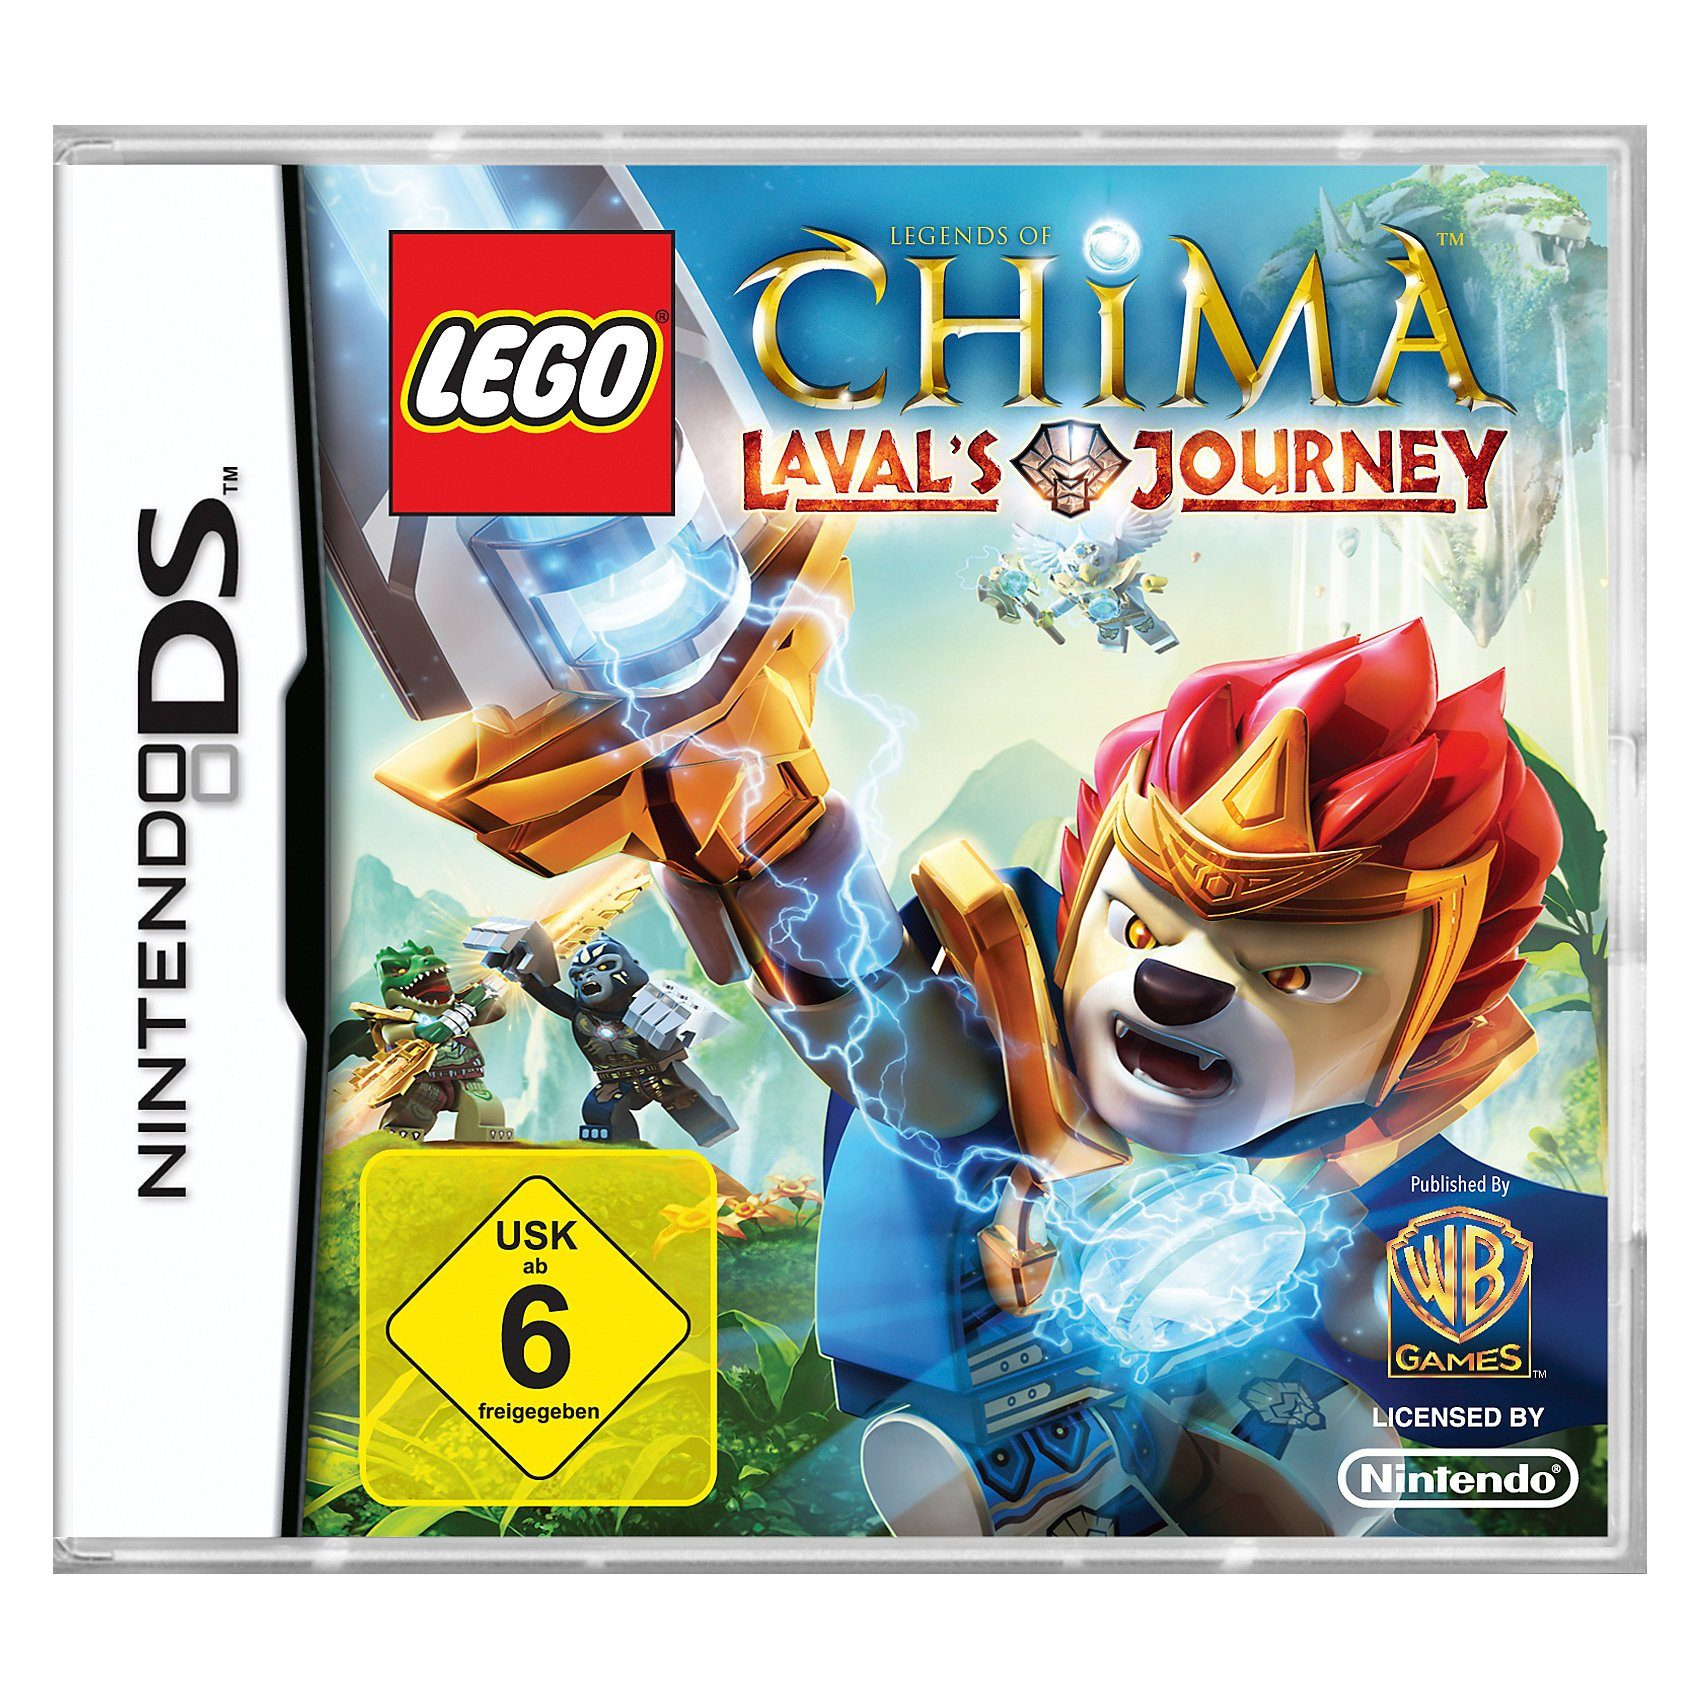 LEGO NDS Legends of Chima - Leval's Journey